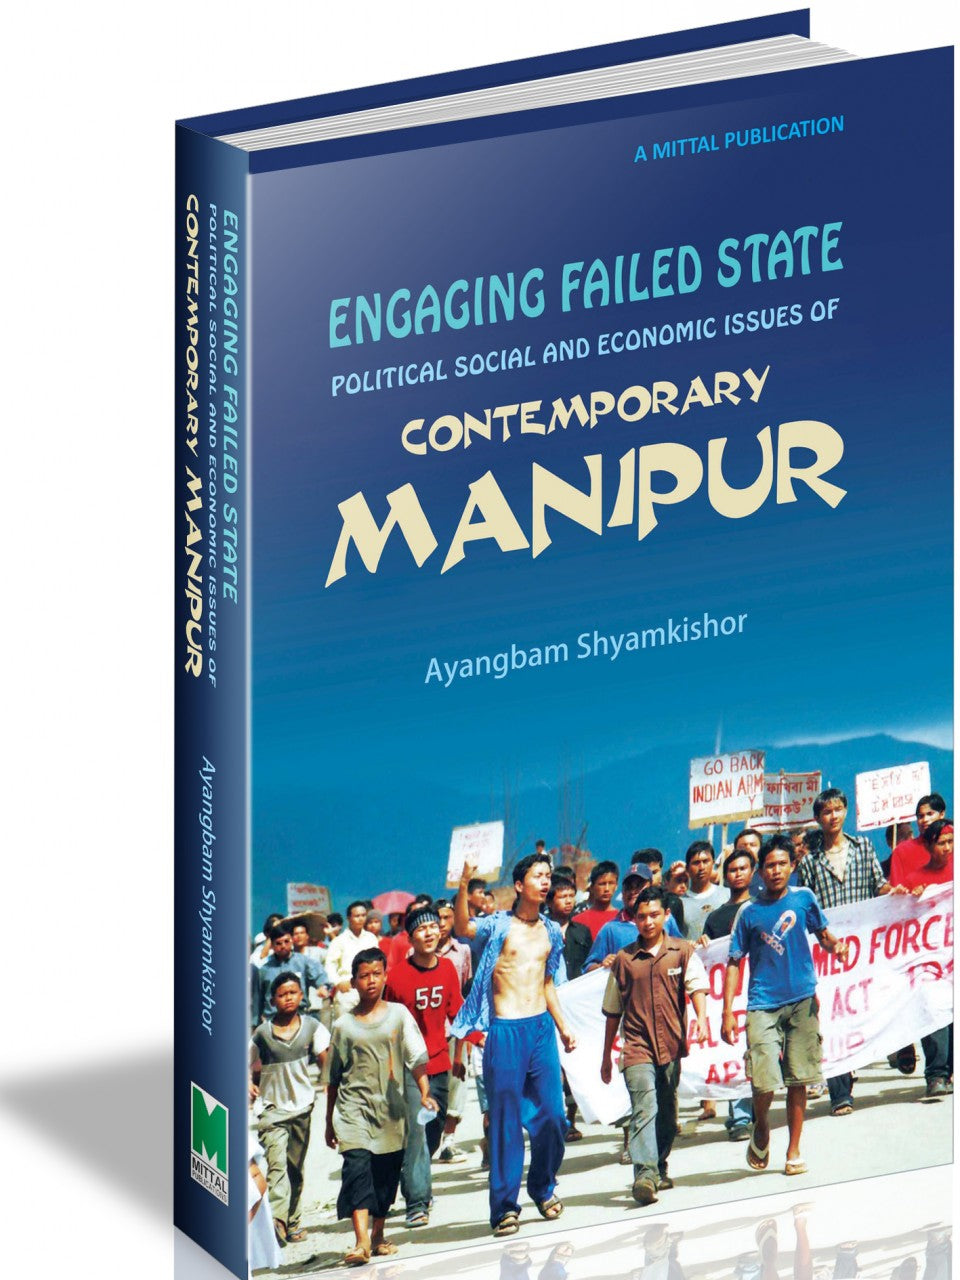 Engaging Failed State - Political Social and Economic issues of Contemporary Manipur